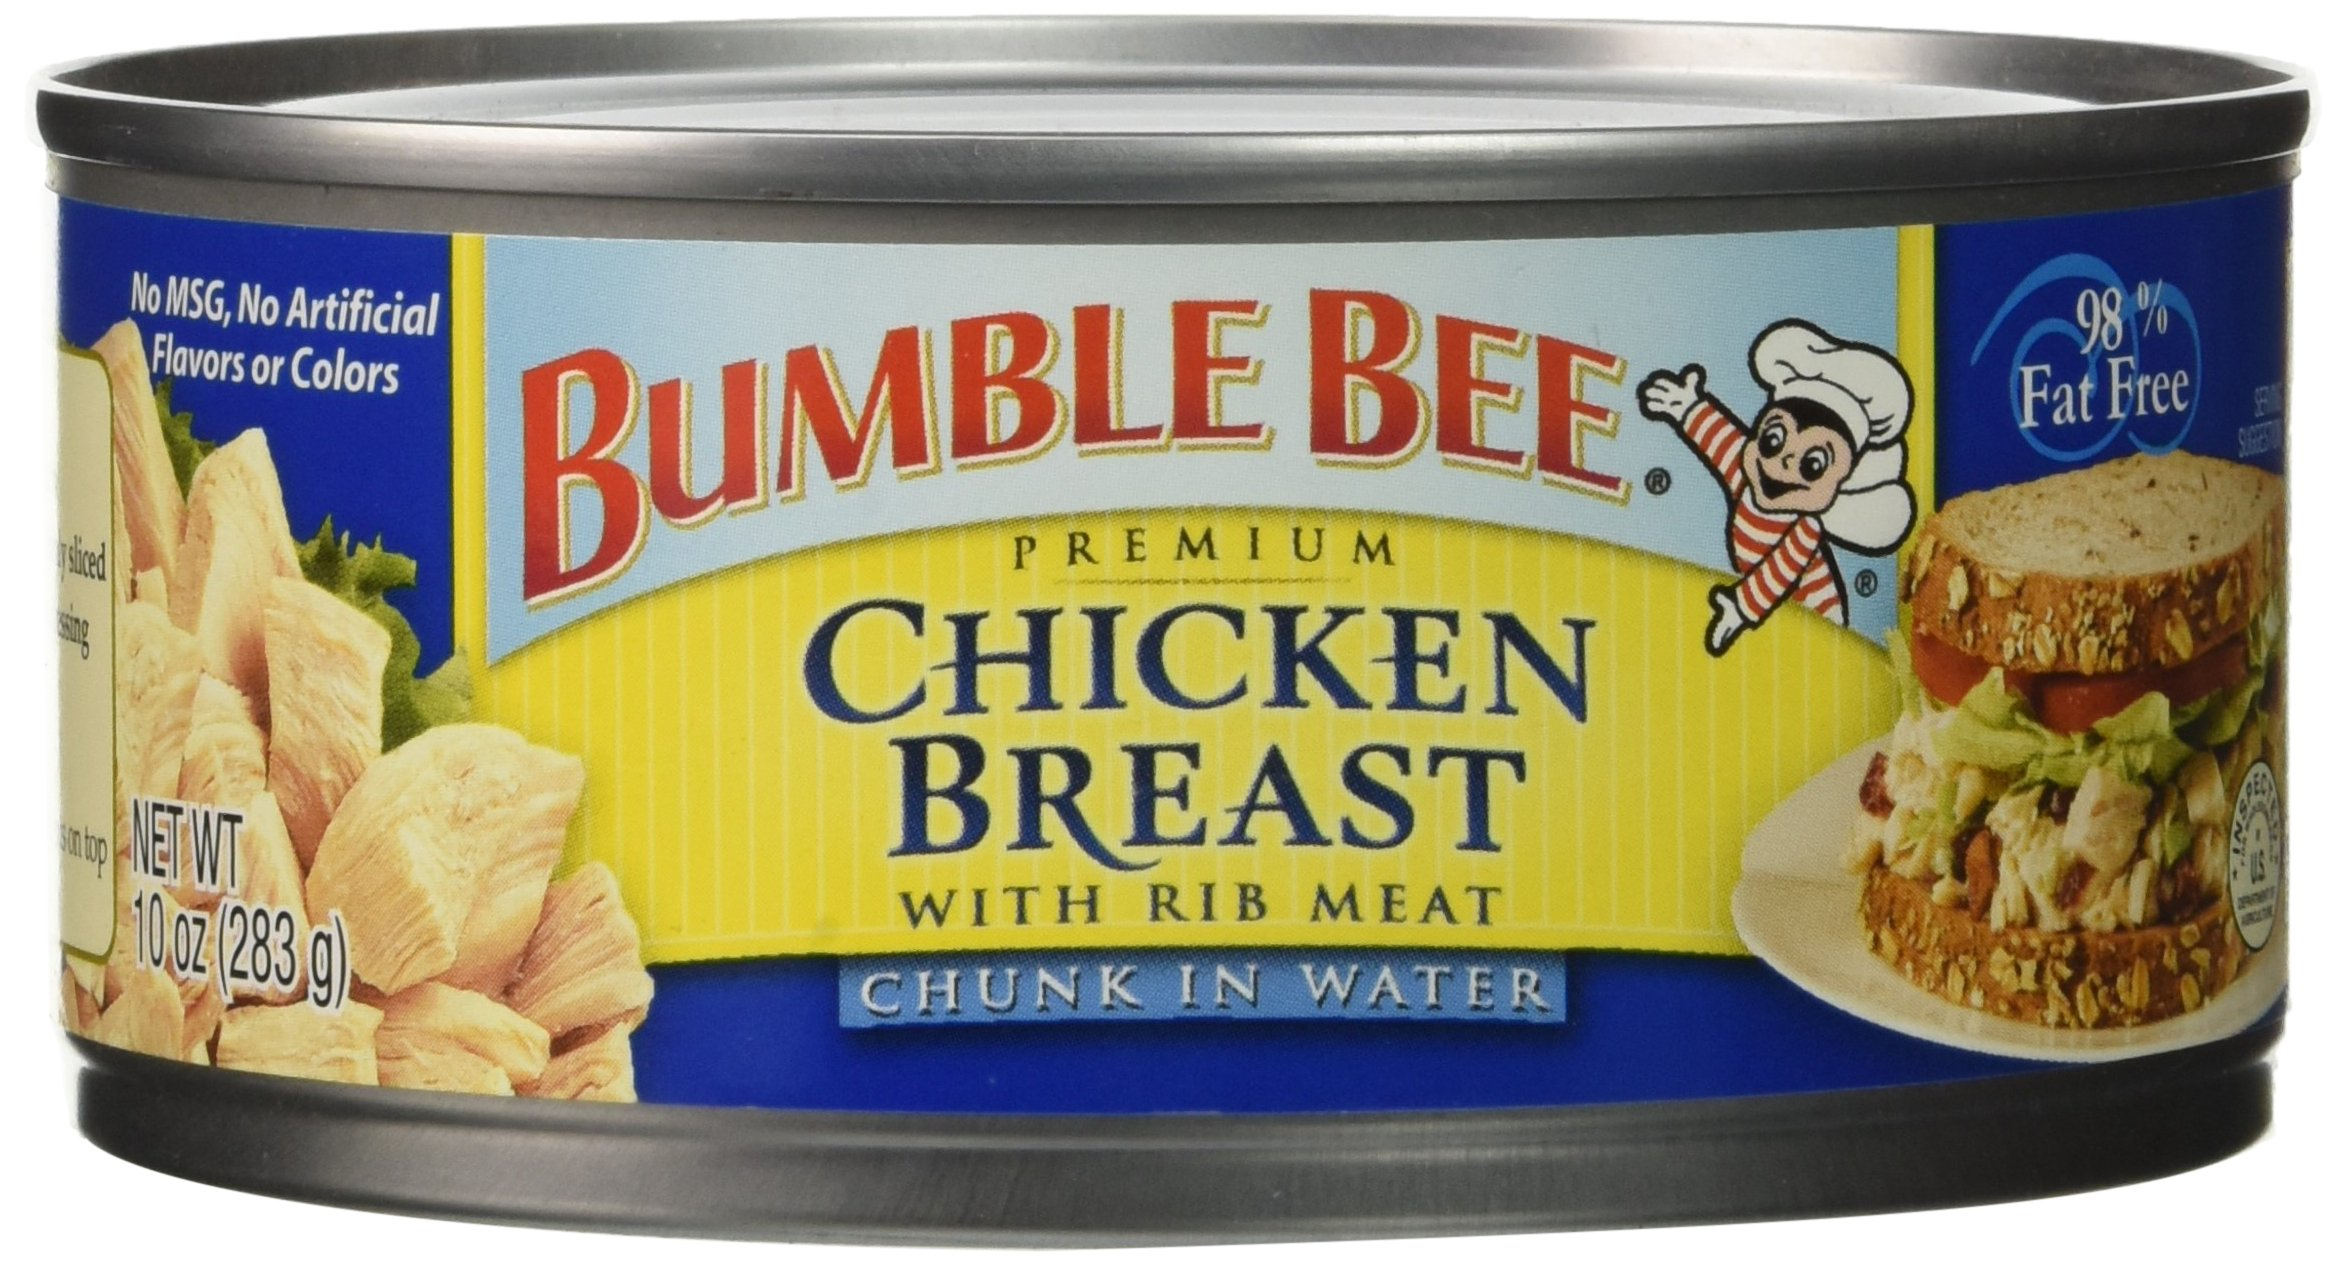 Bumble Bee Premium Chicken Breast in Water, High Protein, Keto, 10 Ounce (10 Cans)